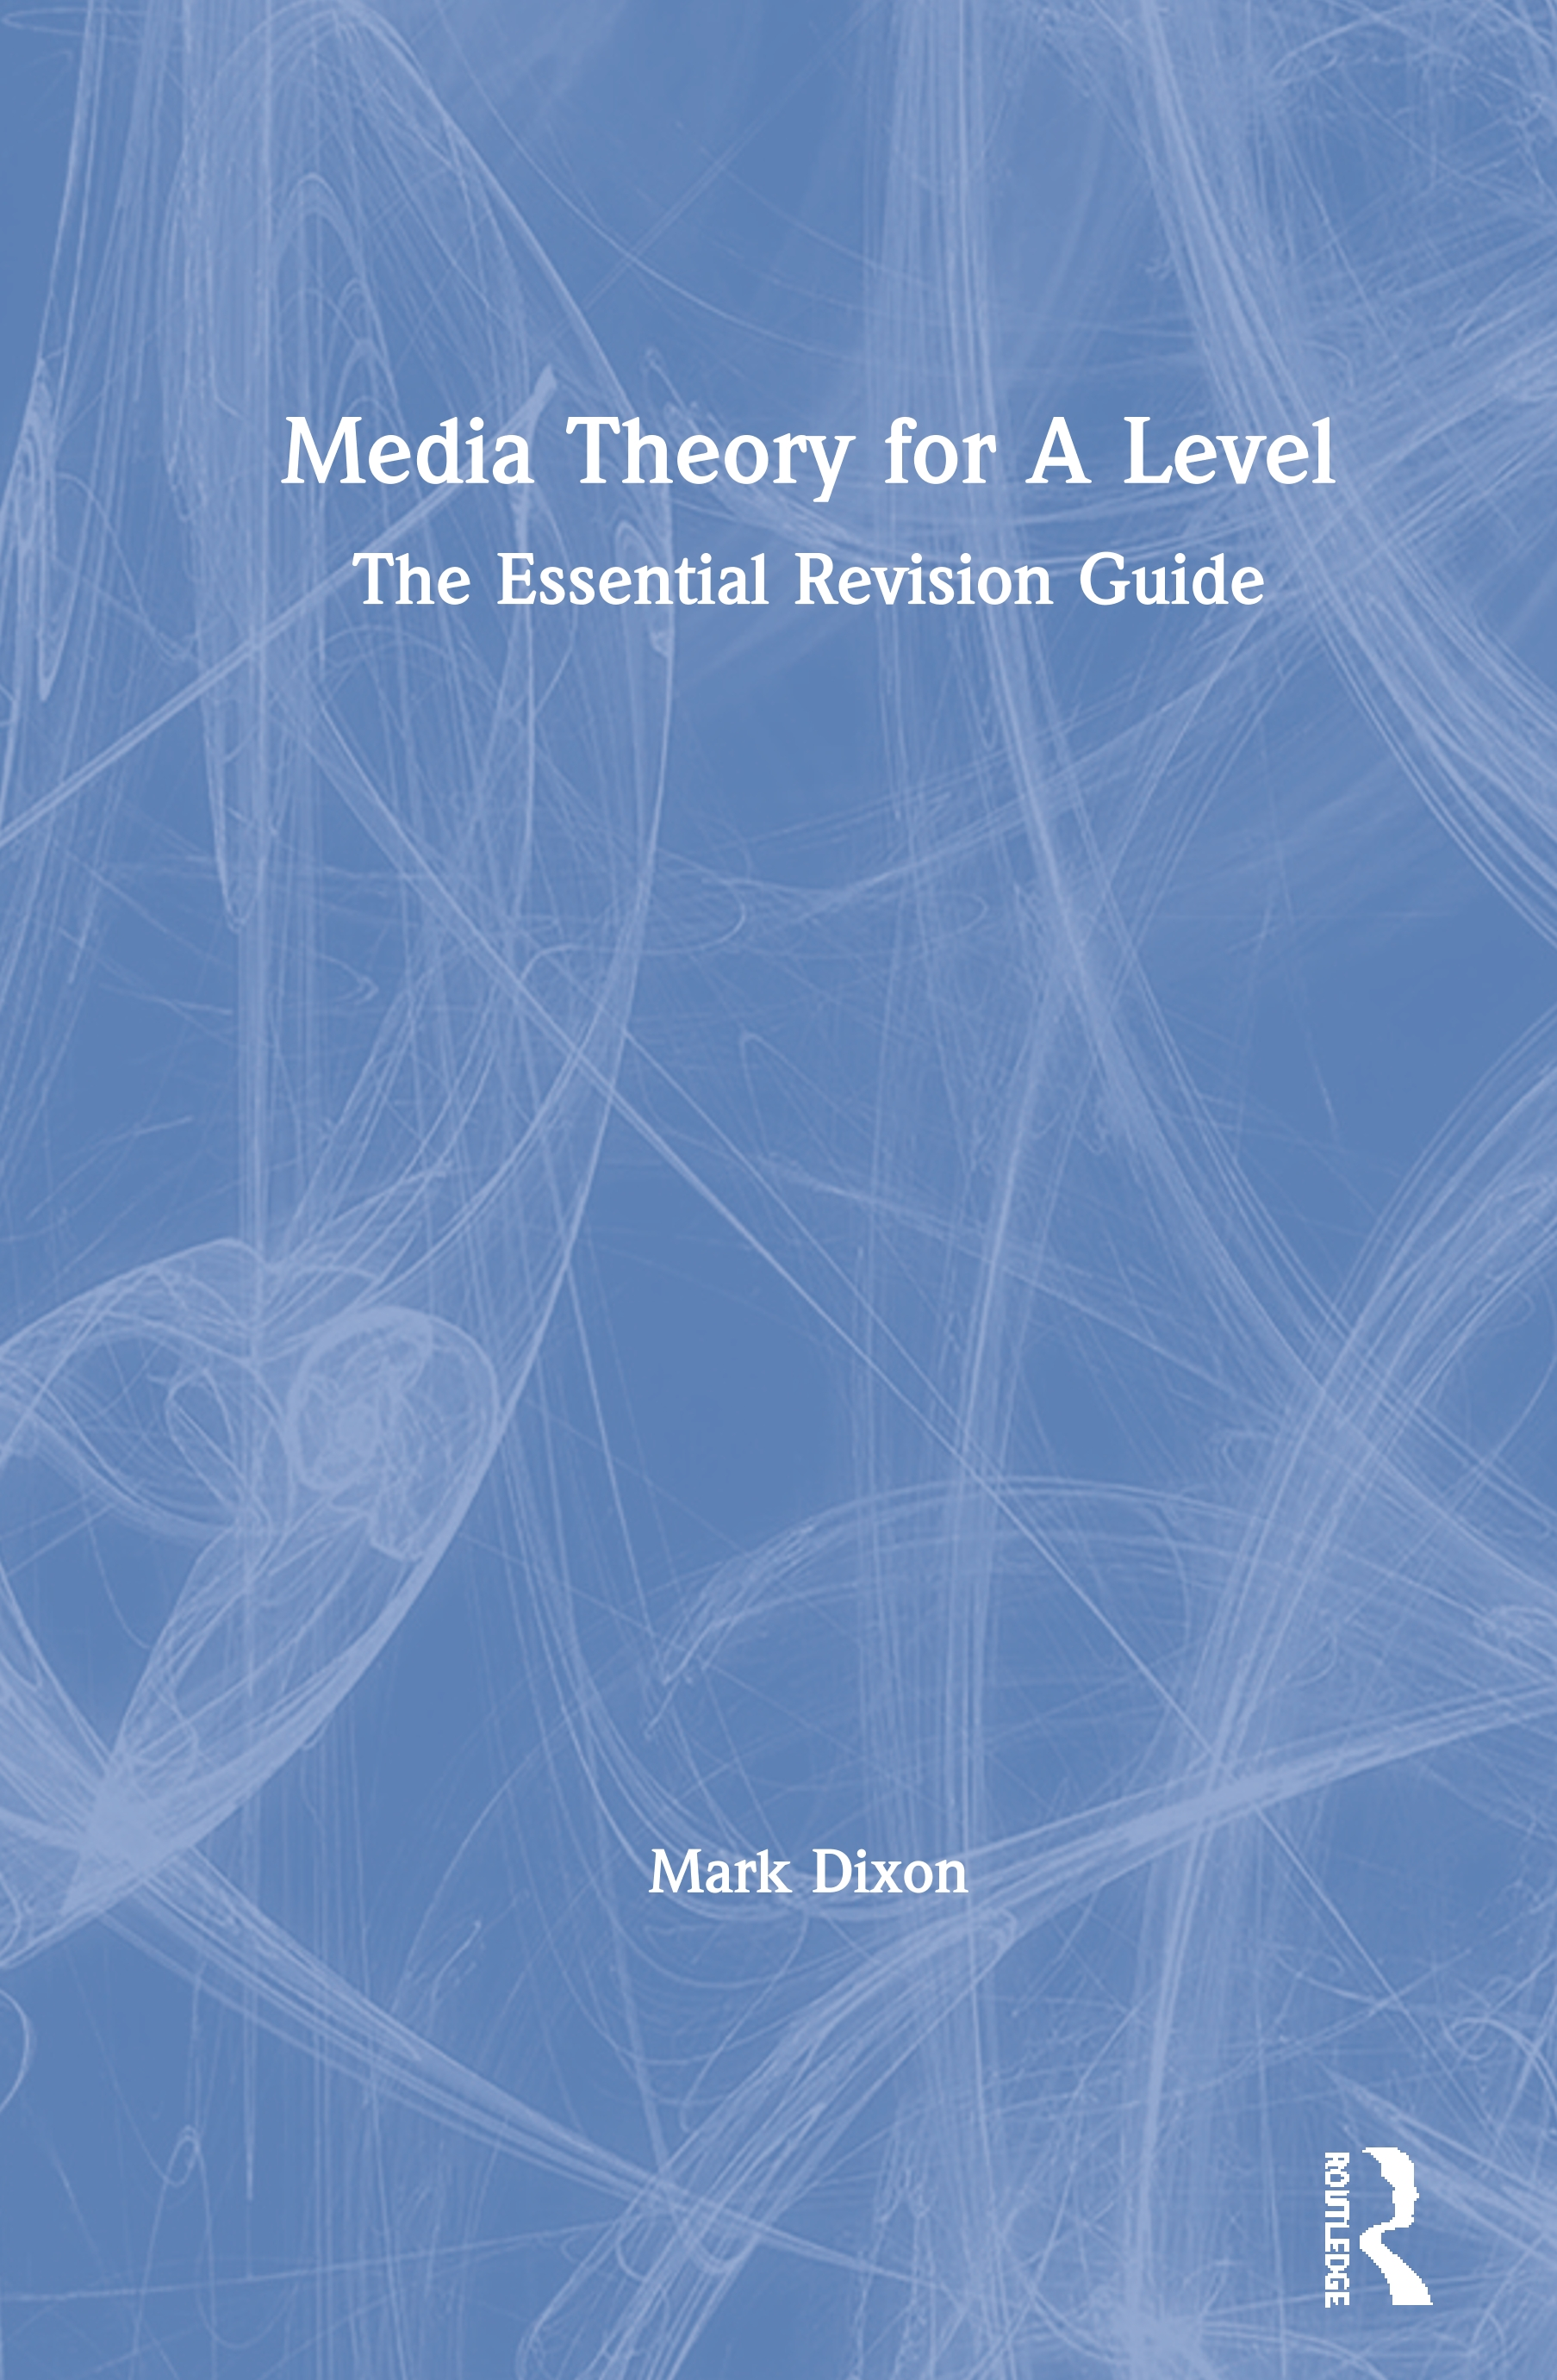 Media Theory for A Level